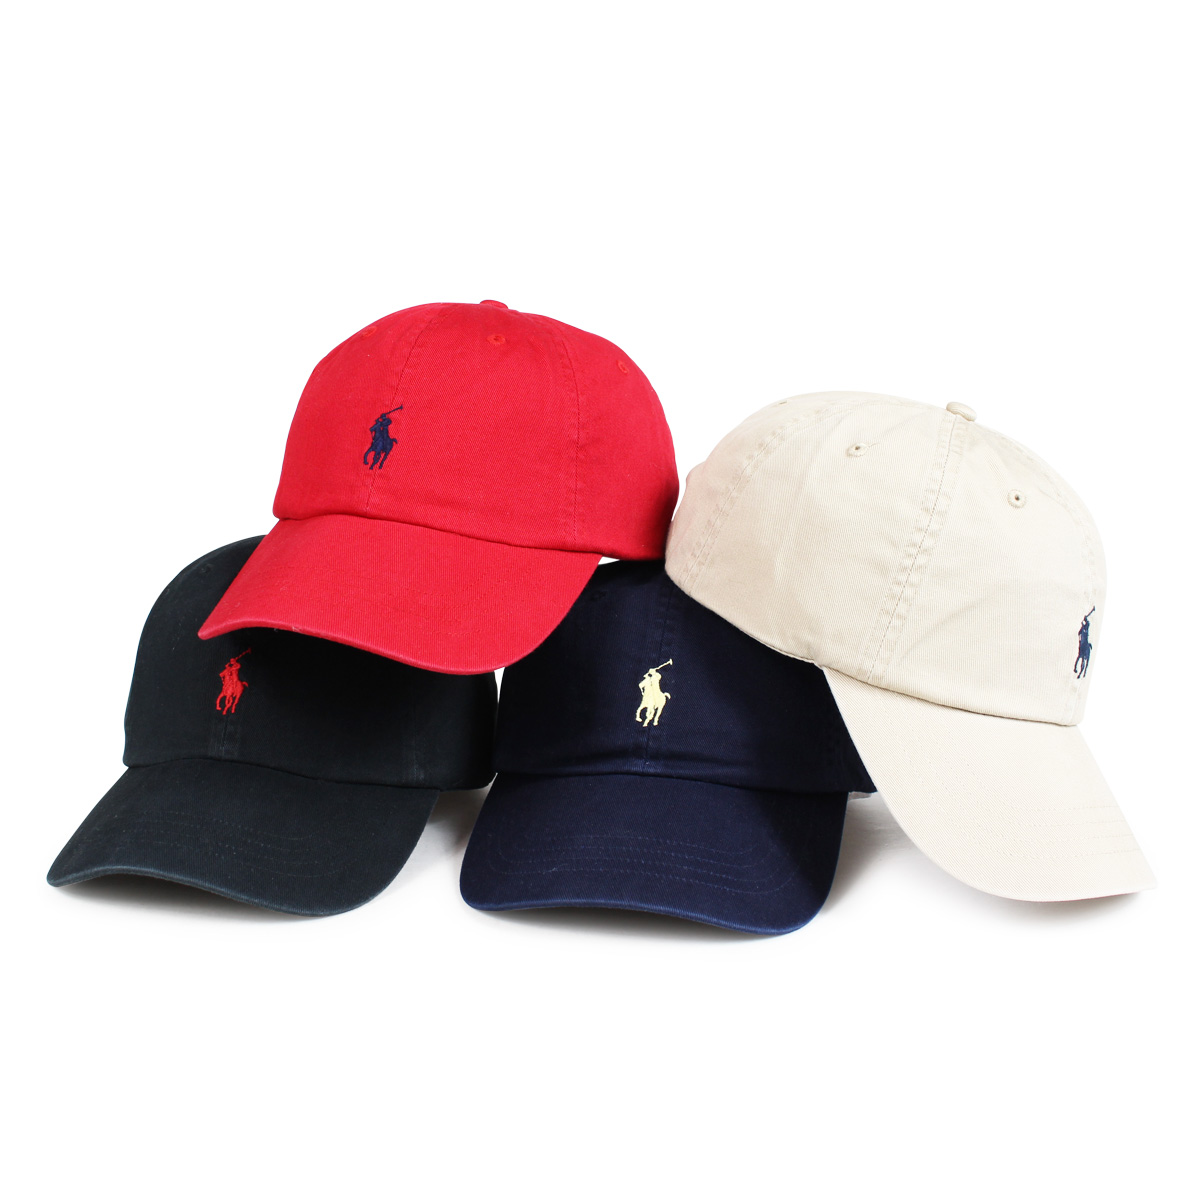 POLO RALPH LAUREN COTTON CHINO BASEBALL CAP polo Ralph Lauren cap hat men  gap Dis cotton black beige red blue 710548524  1 15 Shinnyu load   191  d126cba8a34